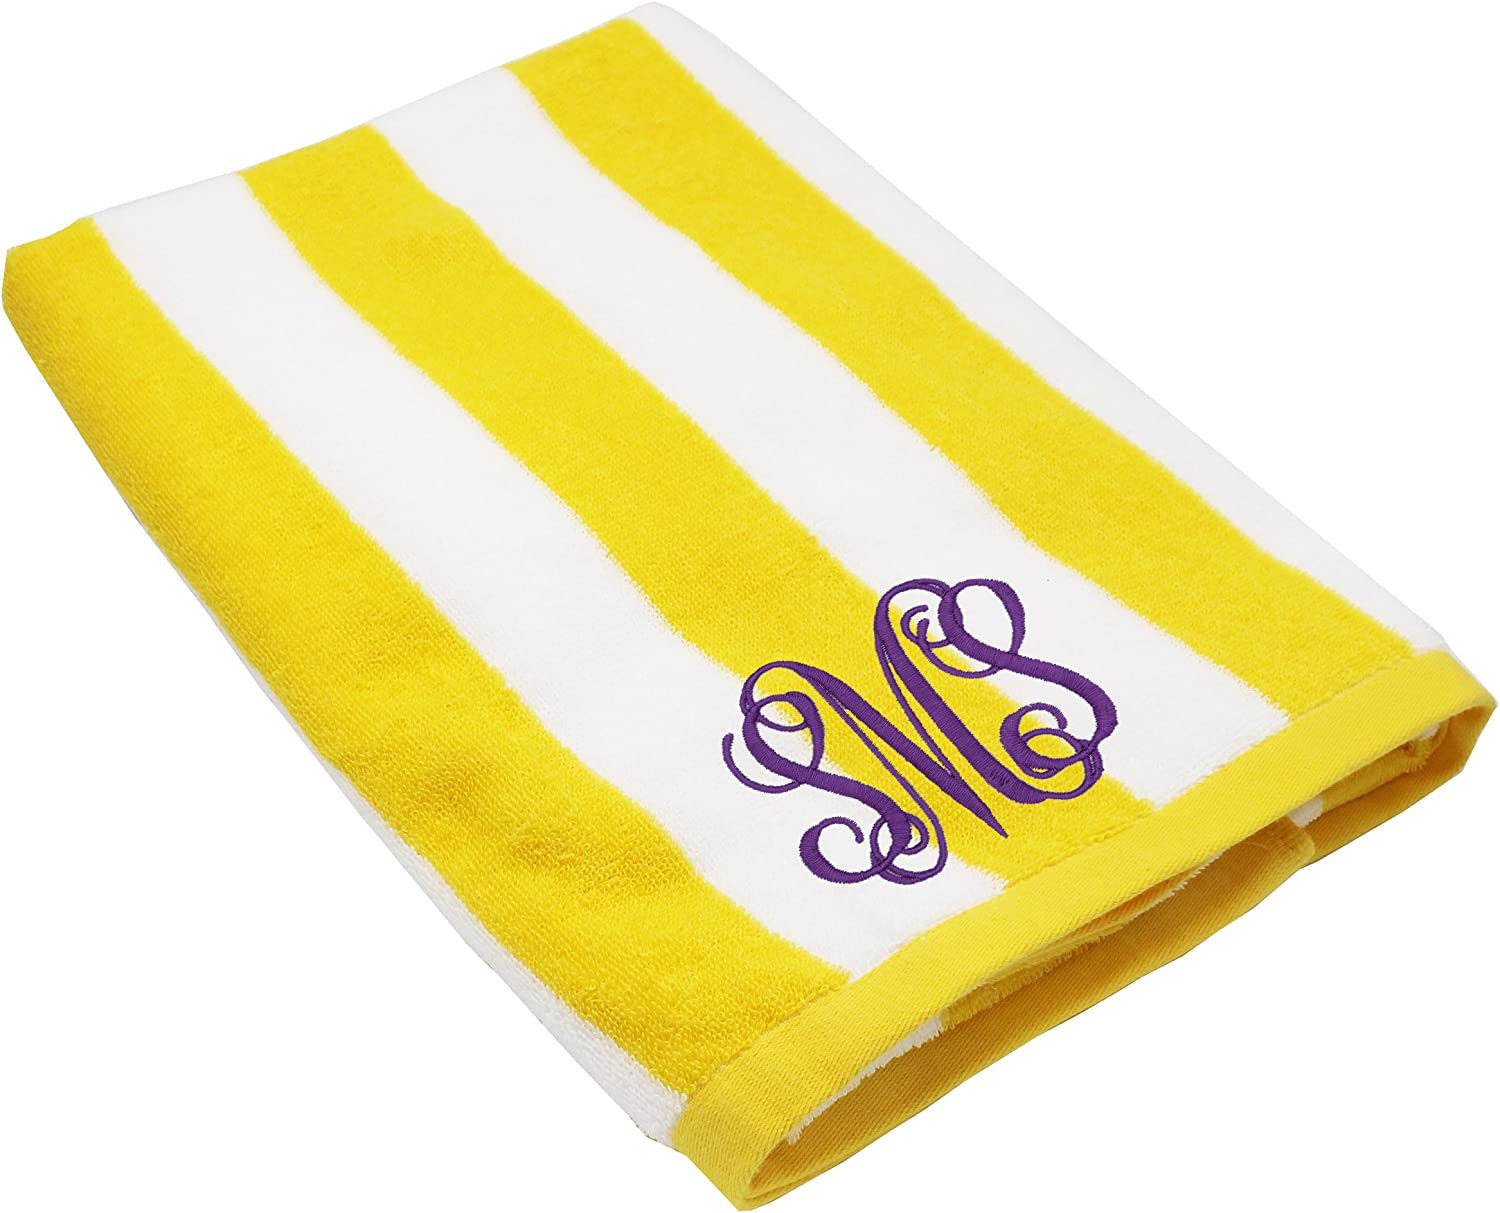 The Wedding Party Store Monogrammed Striped Beach Towel